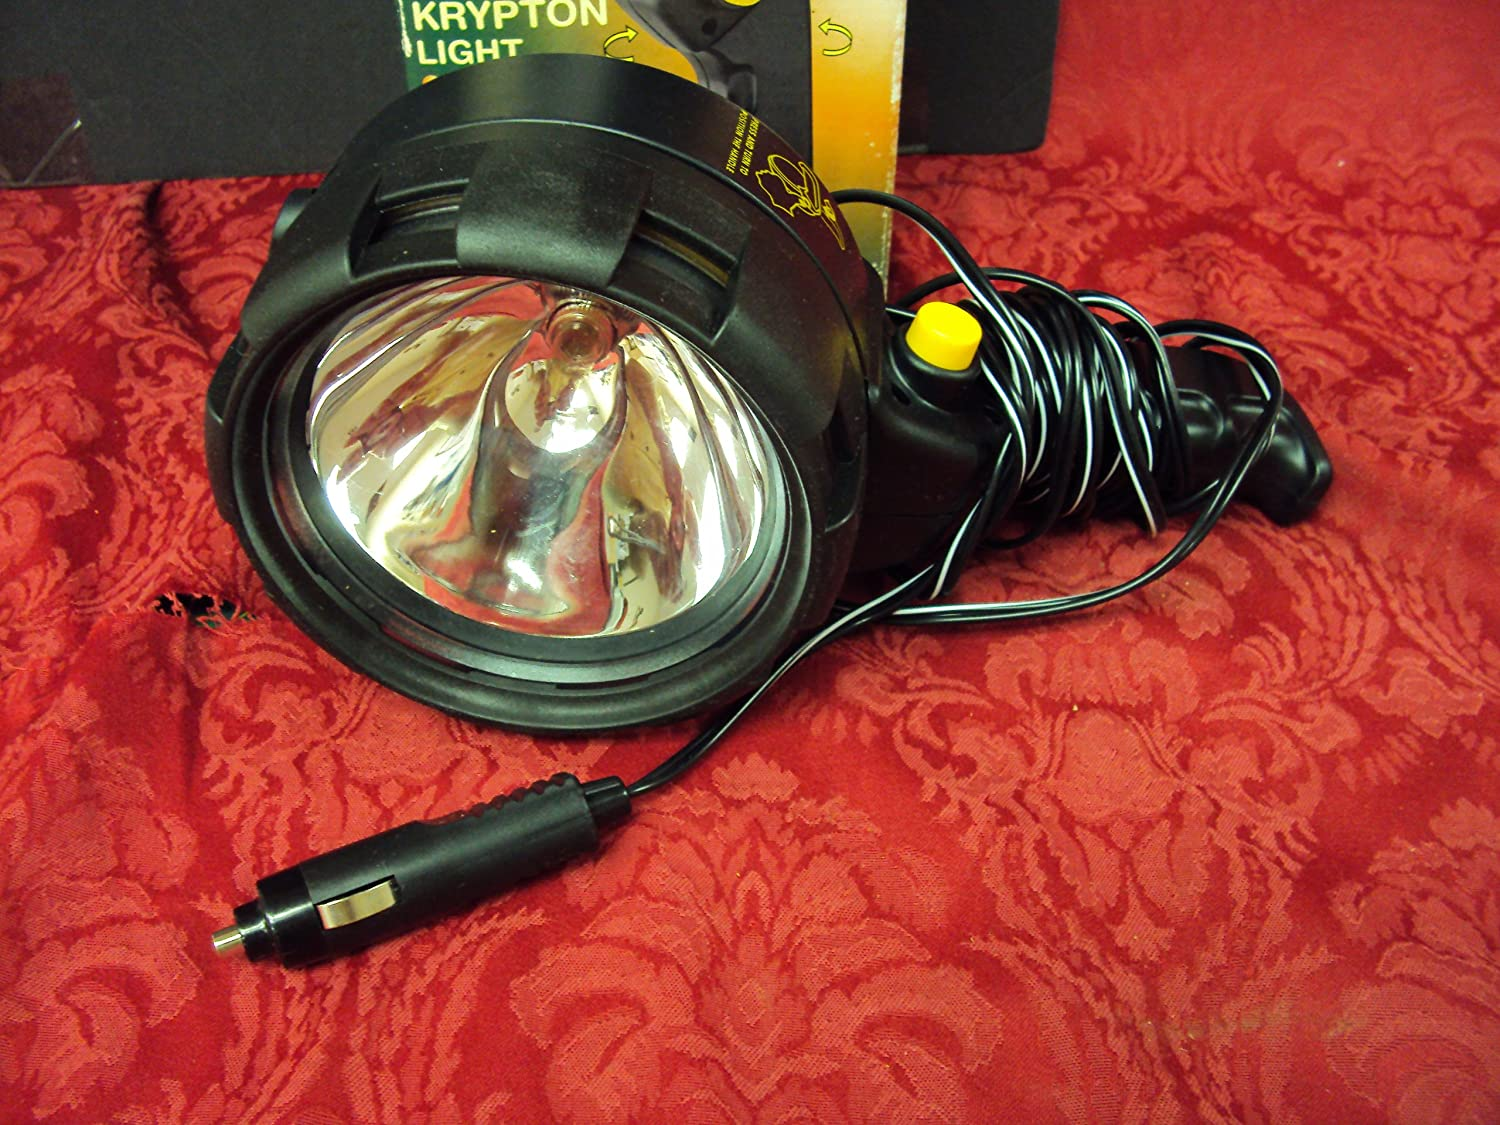 Weather Proof Krypton Power Hunting Fishing Camping Light with 12V Car Plug